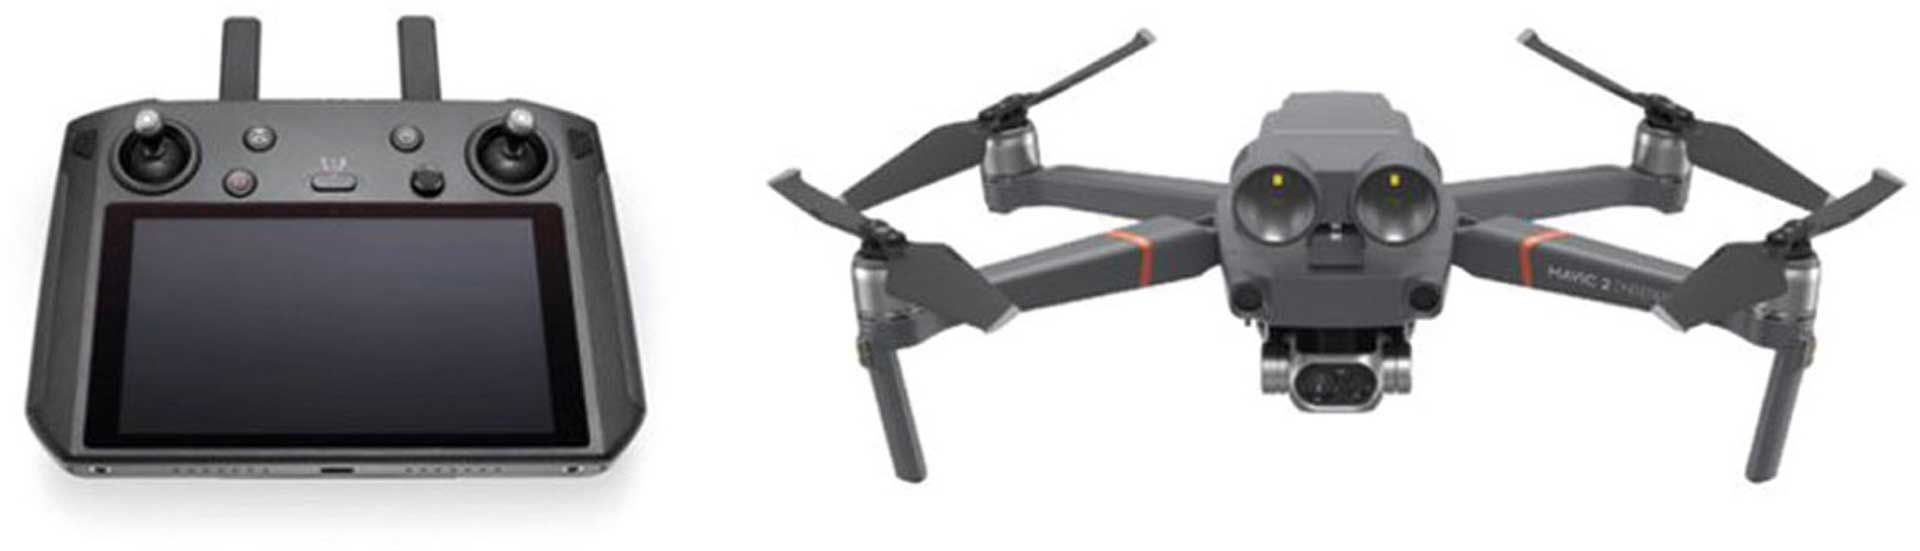 DJI MAVIC 2 ENTERPRISE THERMAL ED. MIT SMART FERNSTEUERUNG FLIR UNIVERSIAL EDITION IDEAL FÜR REHKITZ SUCHE